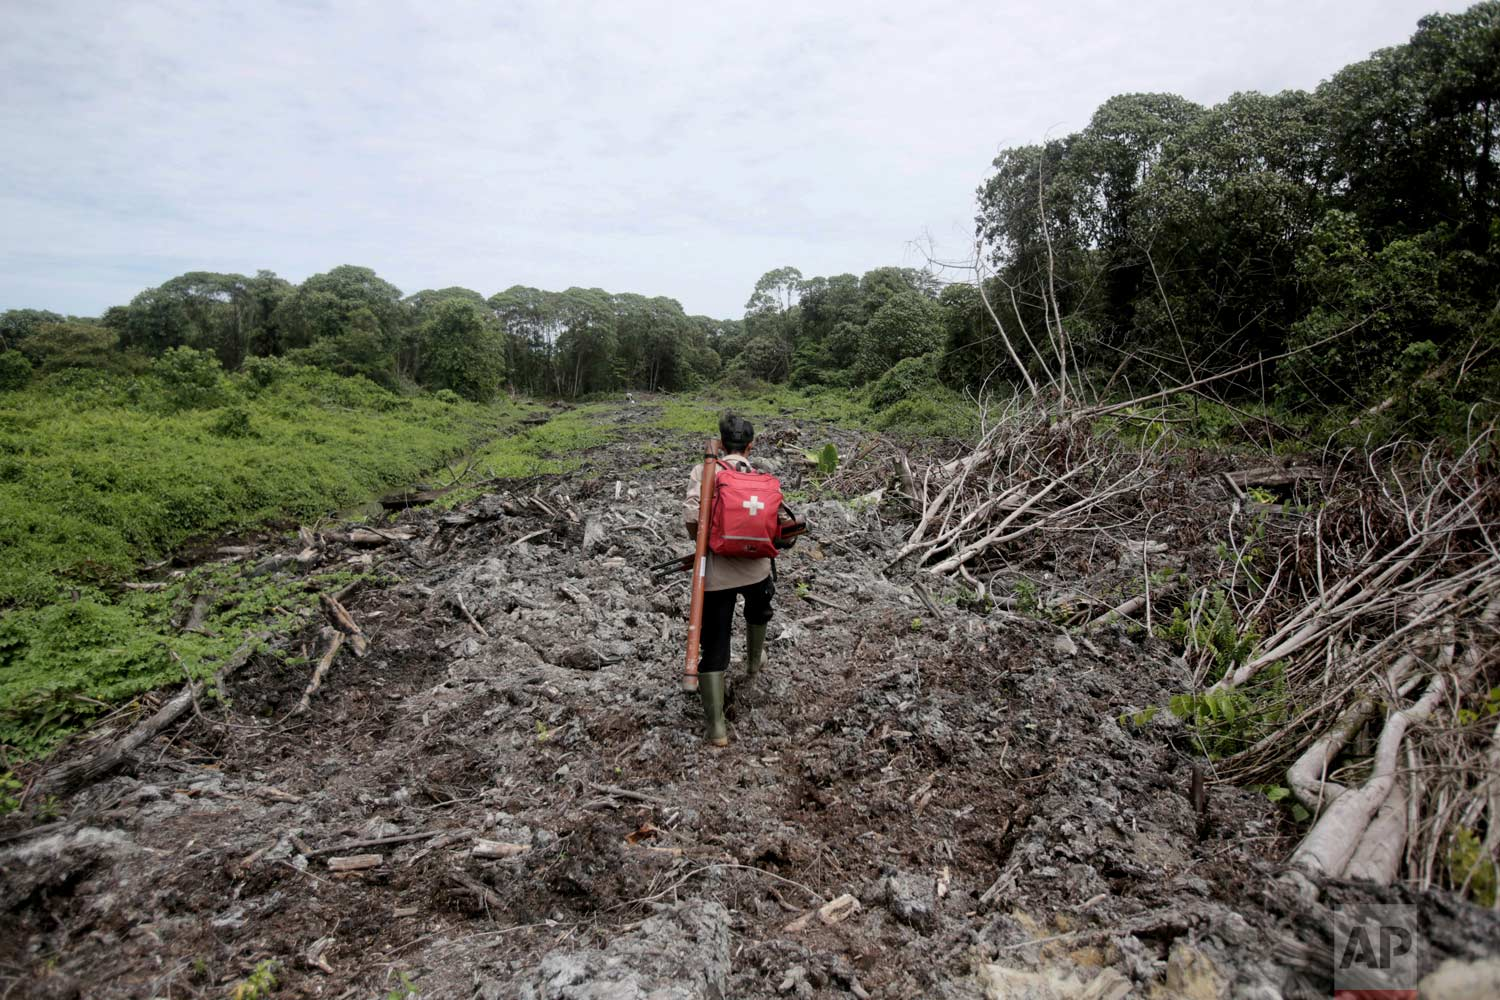 In this Thursday, Aug. 10, 2017 photo, Pandu Wibisono, a conservationist of the Sumatran Orangutan Conservation Program (SOCP), carries a medical pack and tranquilizer rifle during a rescue operation for orangutans trapped in a swath of disrupted forest near a palm oil plantation at Tripa peat swamp in Aceh province, Indonesia. (AP Photo/Binsar Bakkara)